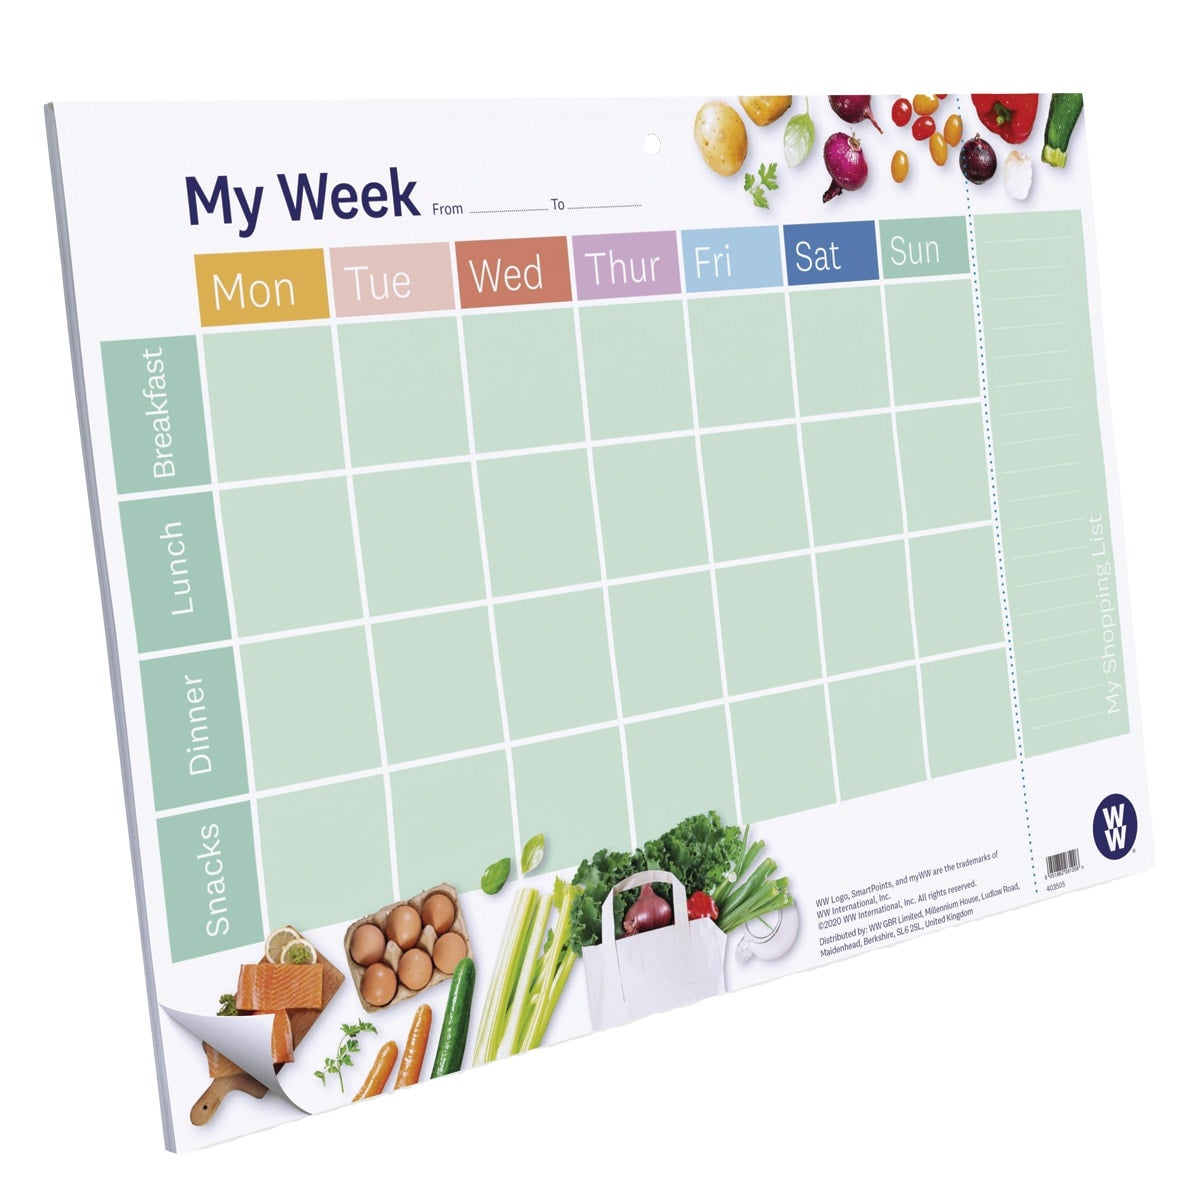 A4-sized WW Meal Planner Pad, tear-off shopping list section, landscape card backed paper pad with 24 tear-off sheets, hole in the centre to hang it up